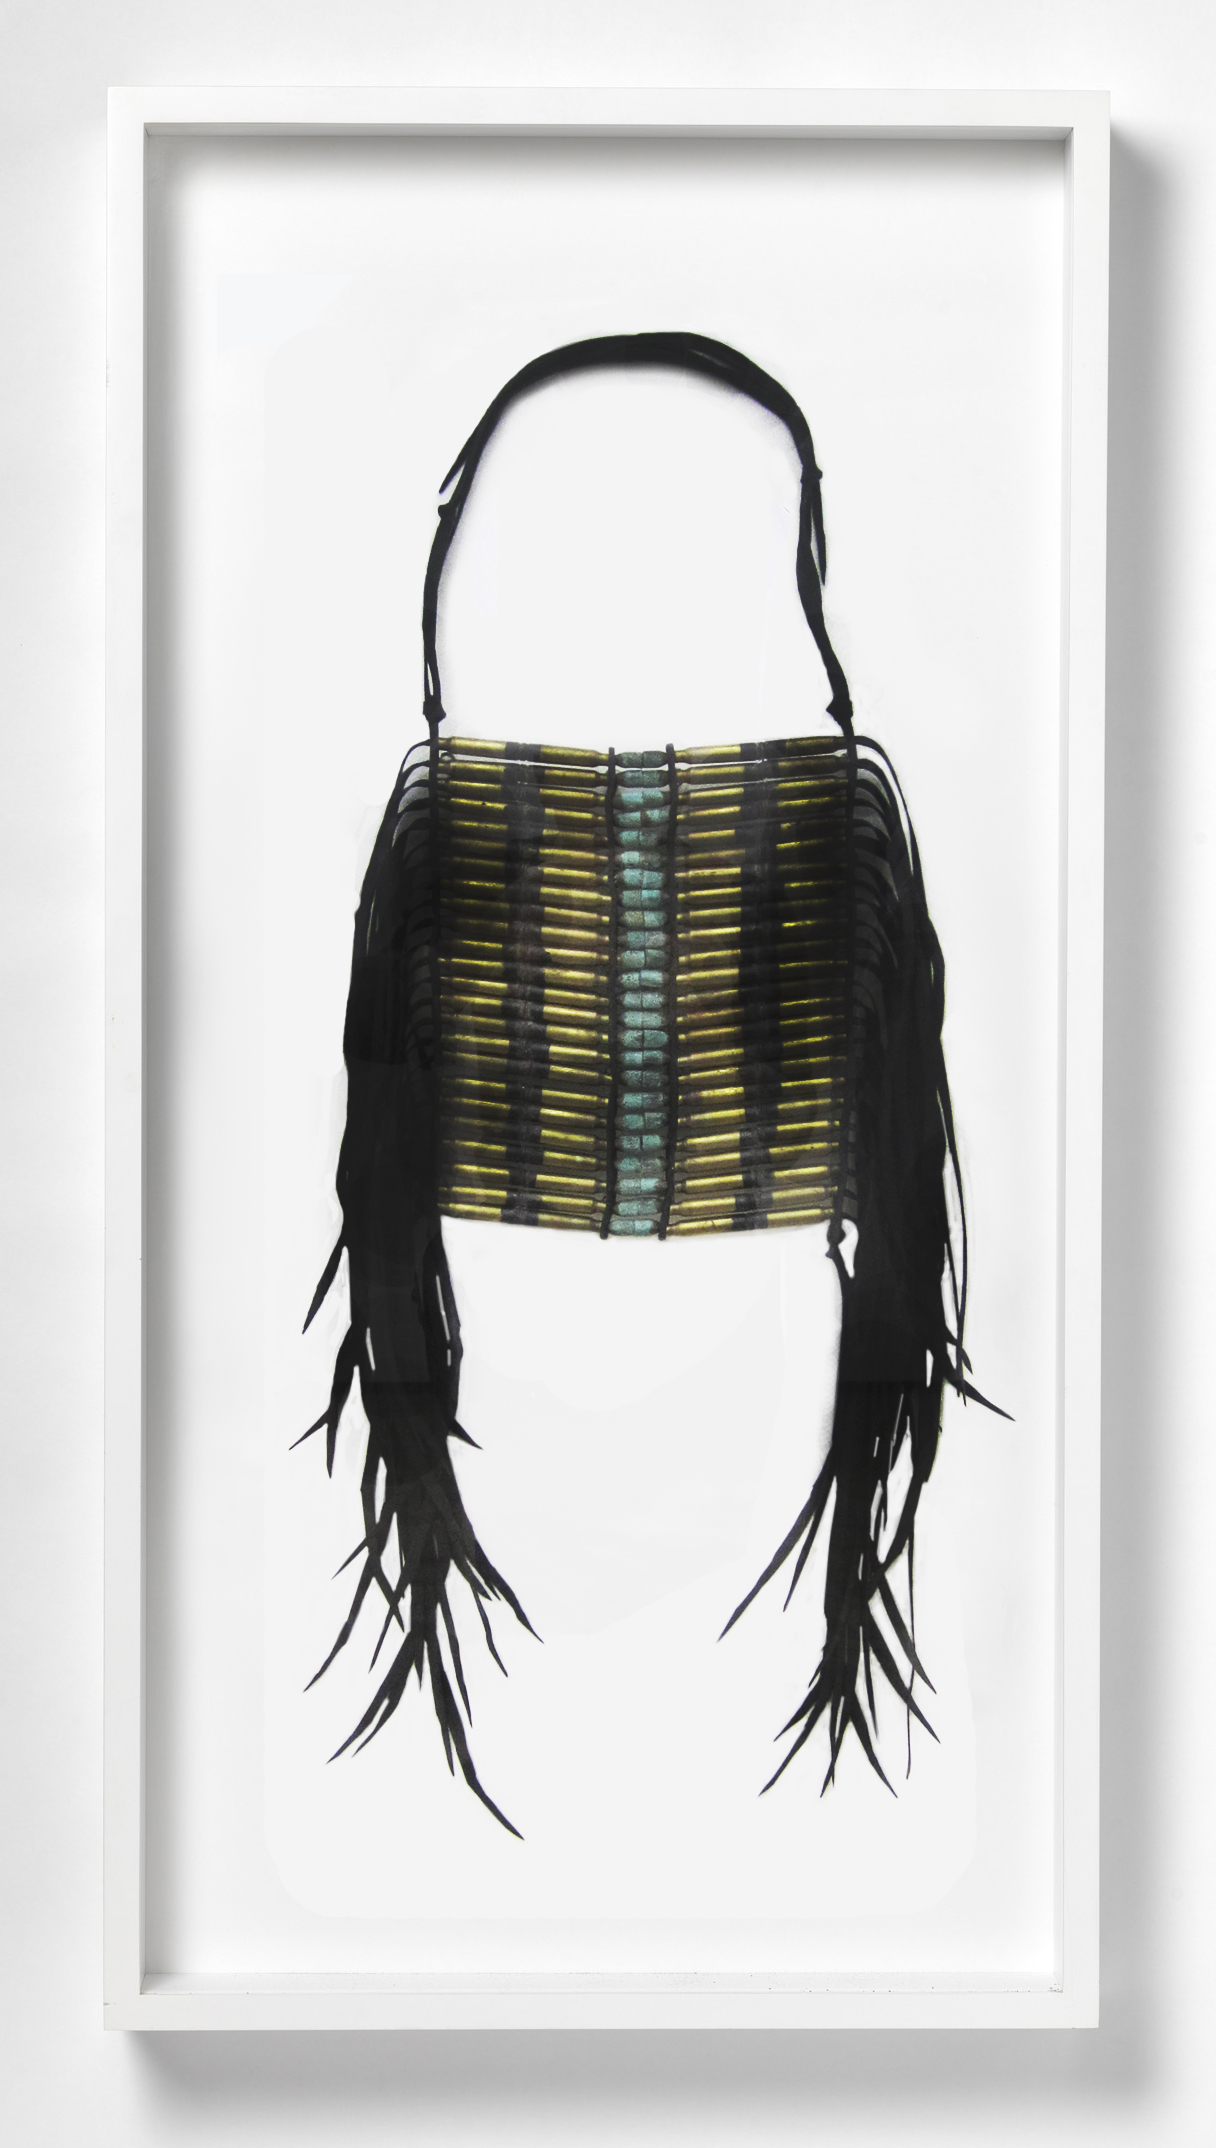 Dave Cole-Breastplate (after Oglala Lakota artifact, date unknown, from a photograph dated 1877)-2013-Military Surplus Gasketing, Butyl Rubber, Military Cartridges, Recovered Projectiles-41x21x3.75-framed.jpg